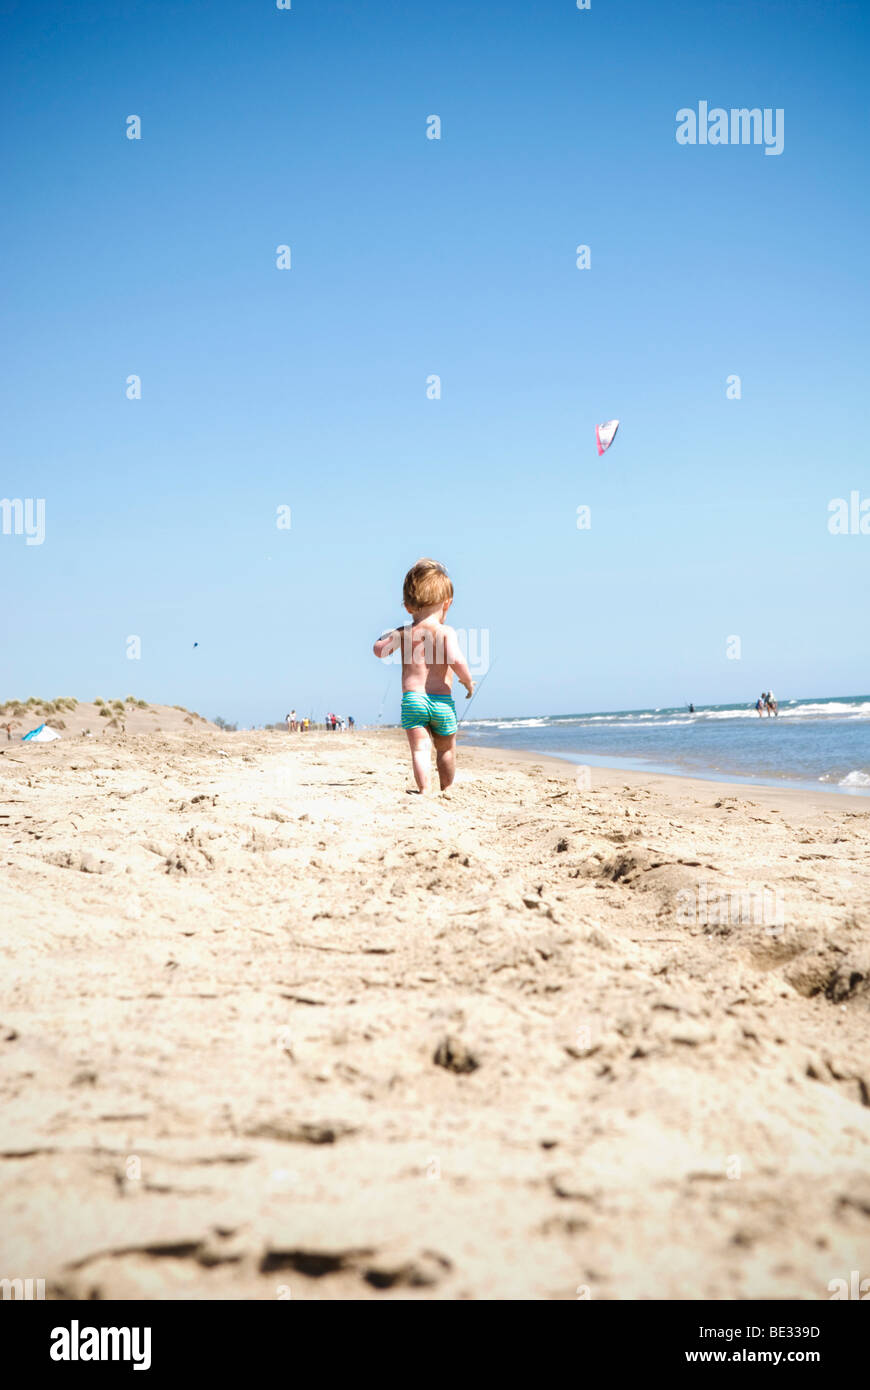 a small male toddler in swimming costume walks away from camera alone on beach with kites overhead - Stock Image